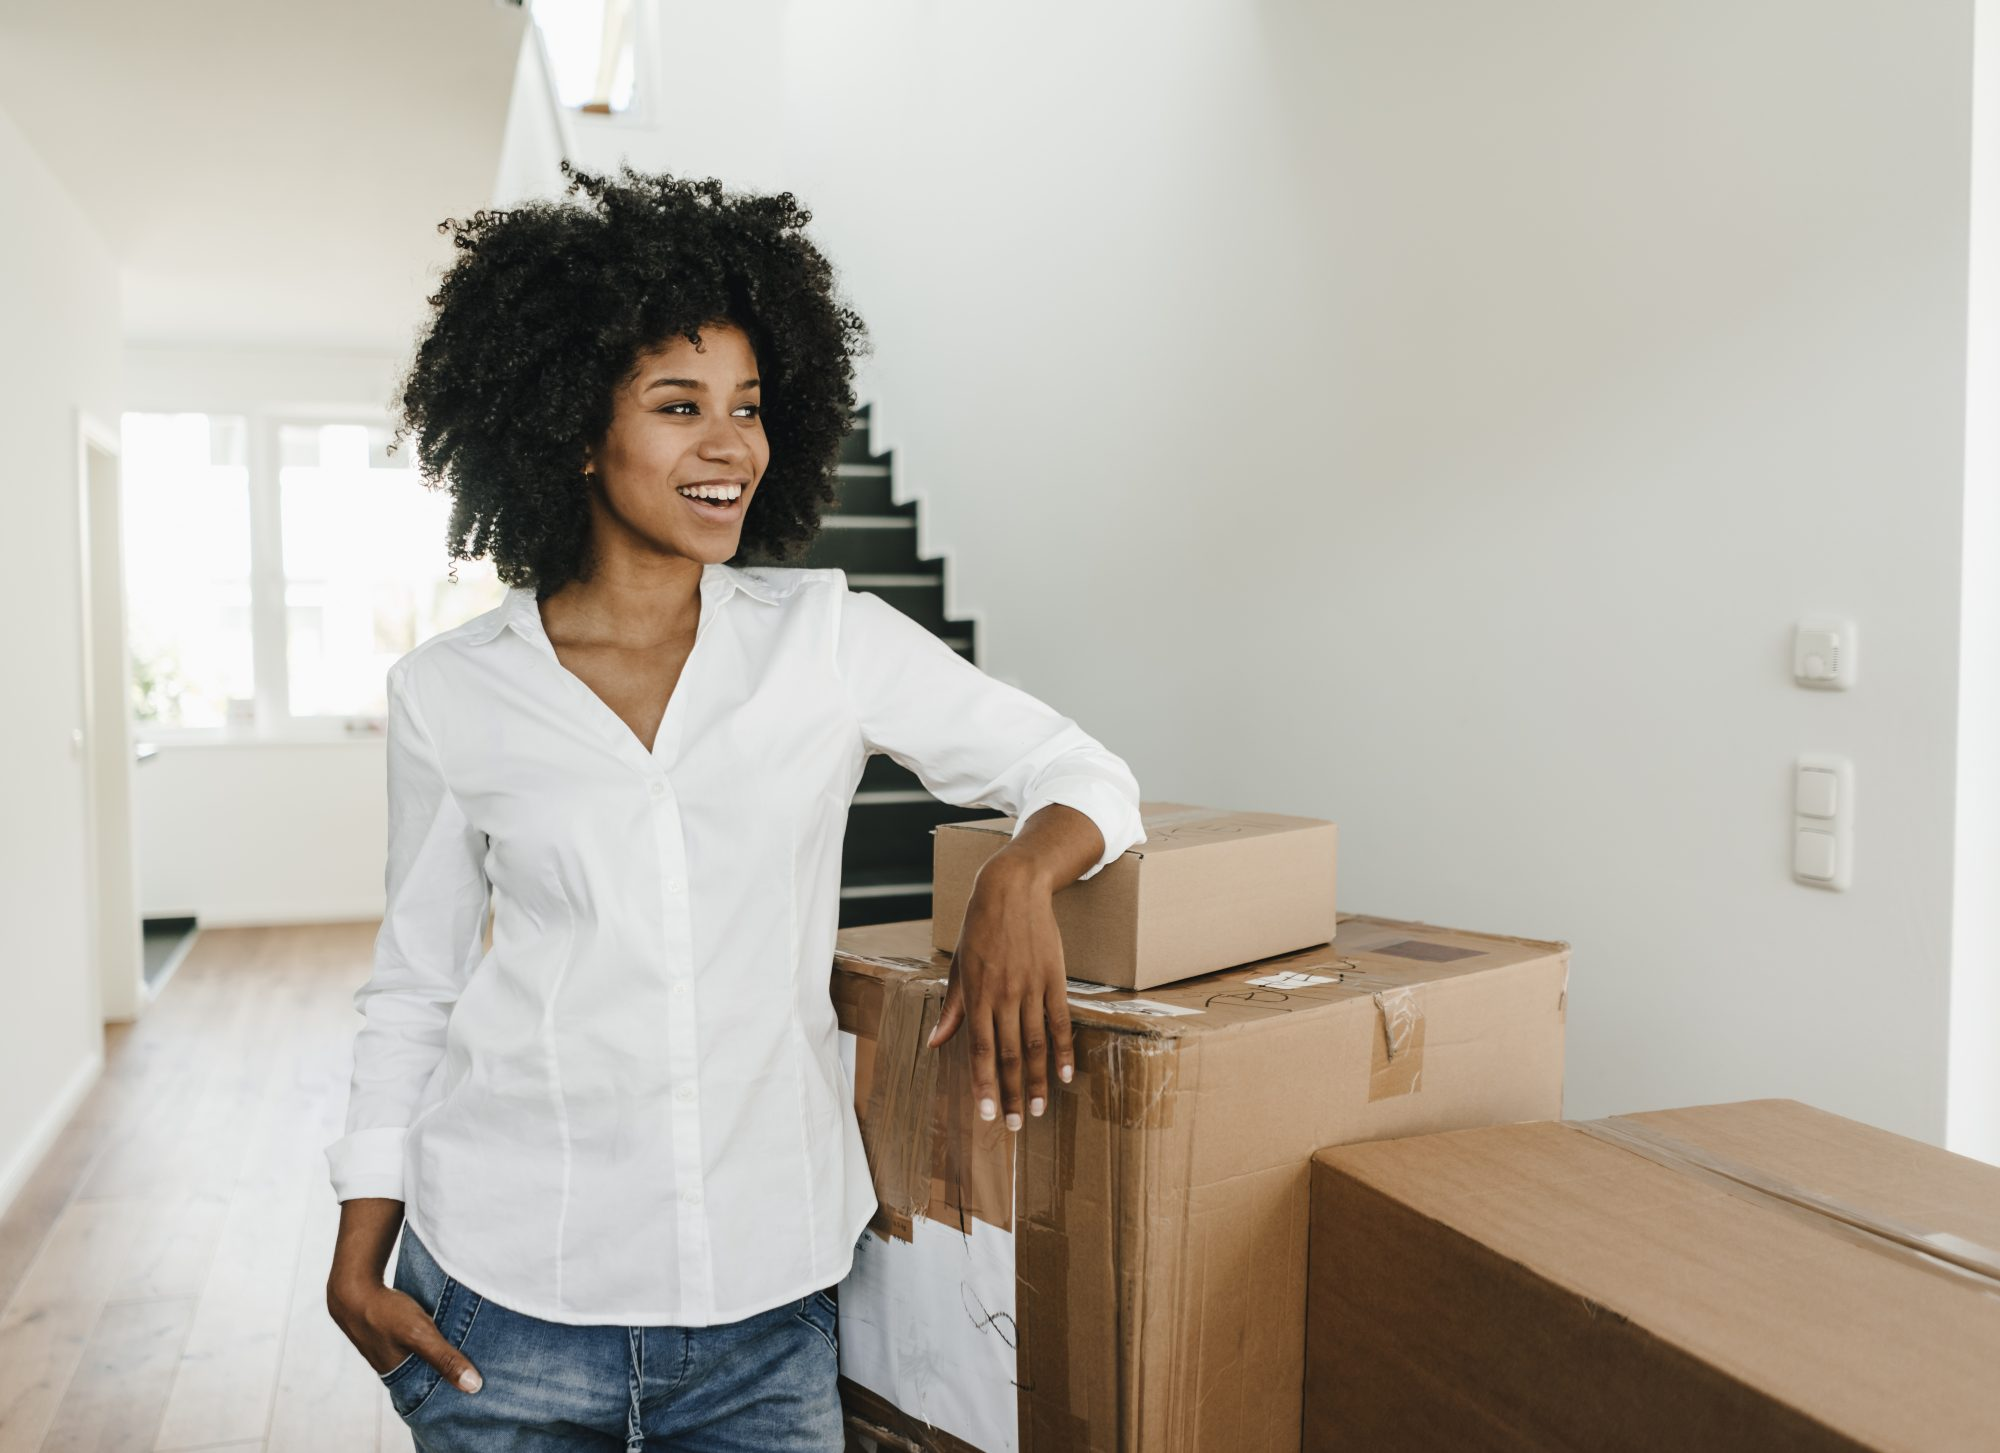 Woman in Home with Boxes